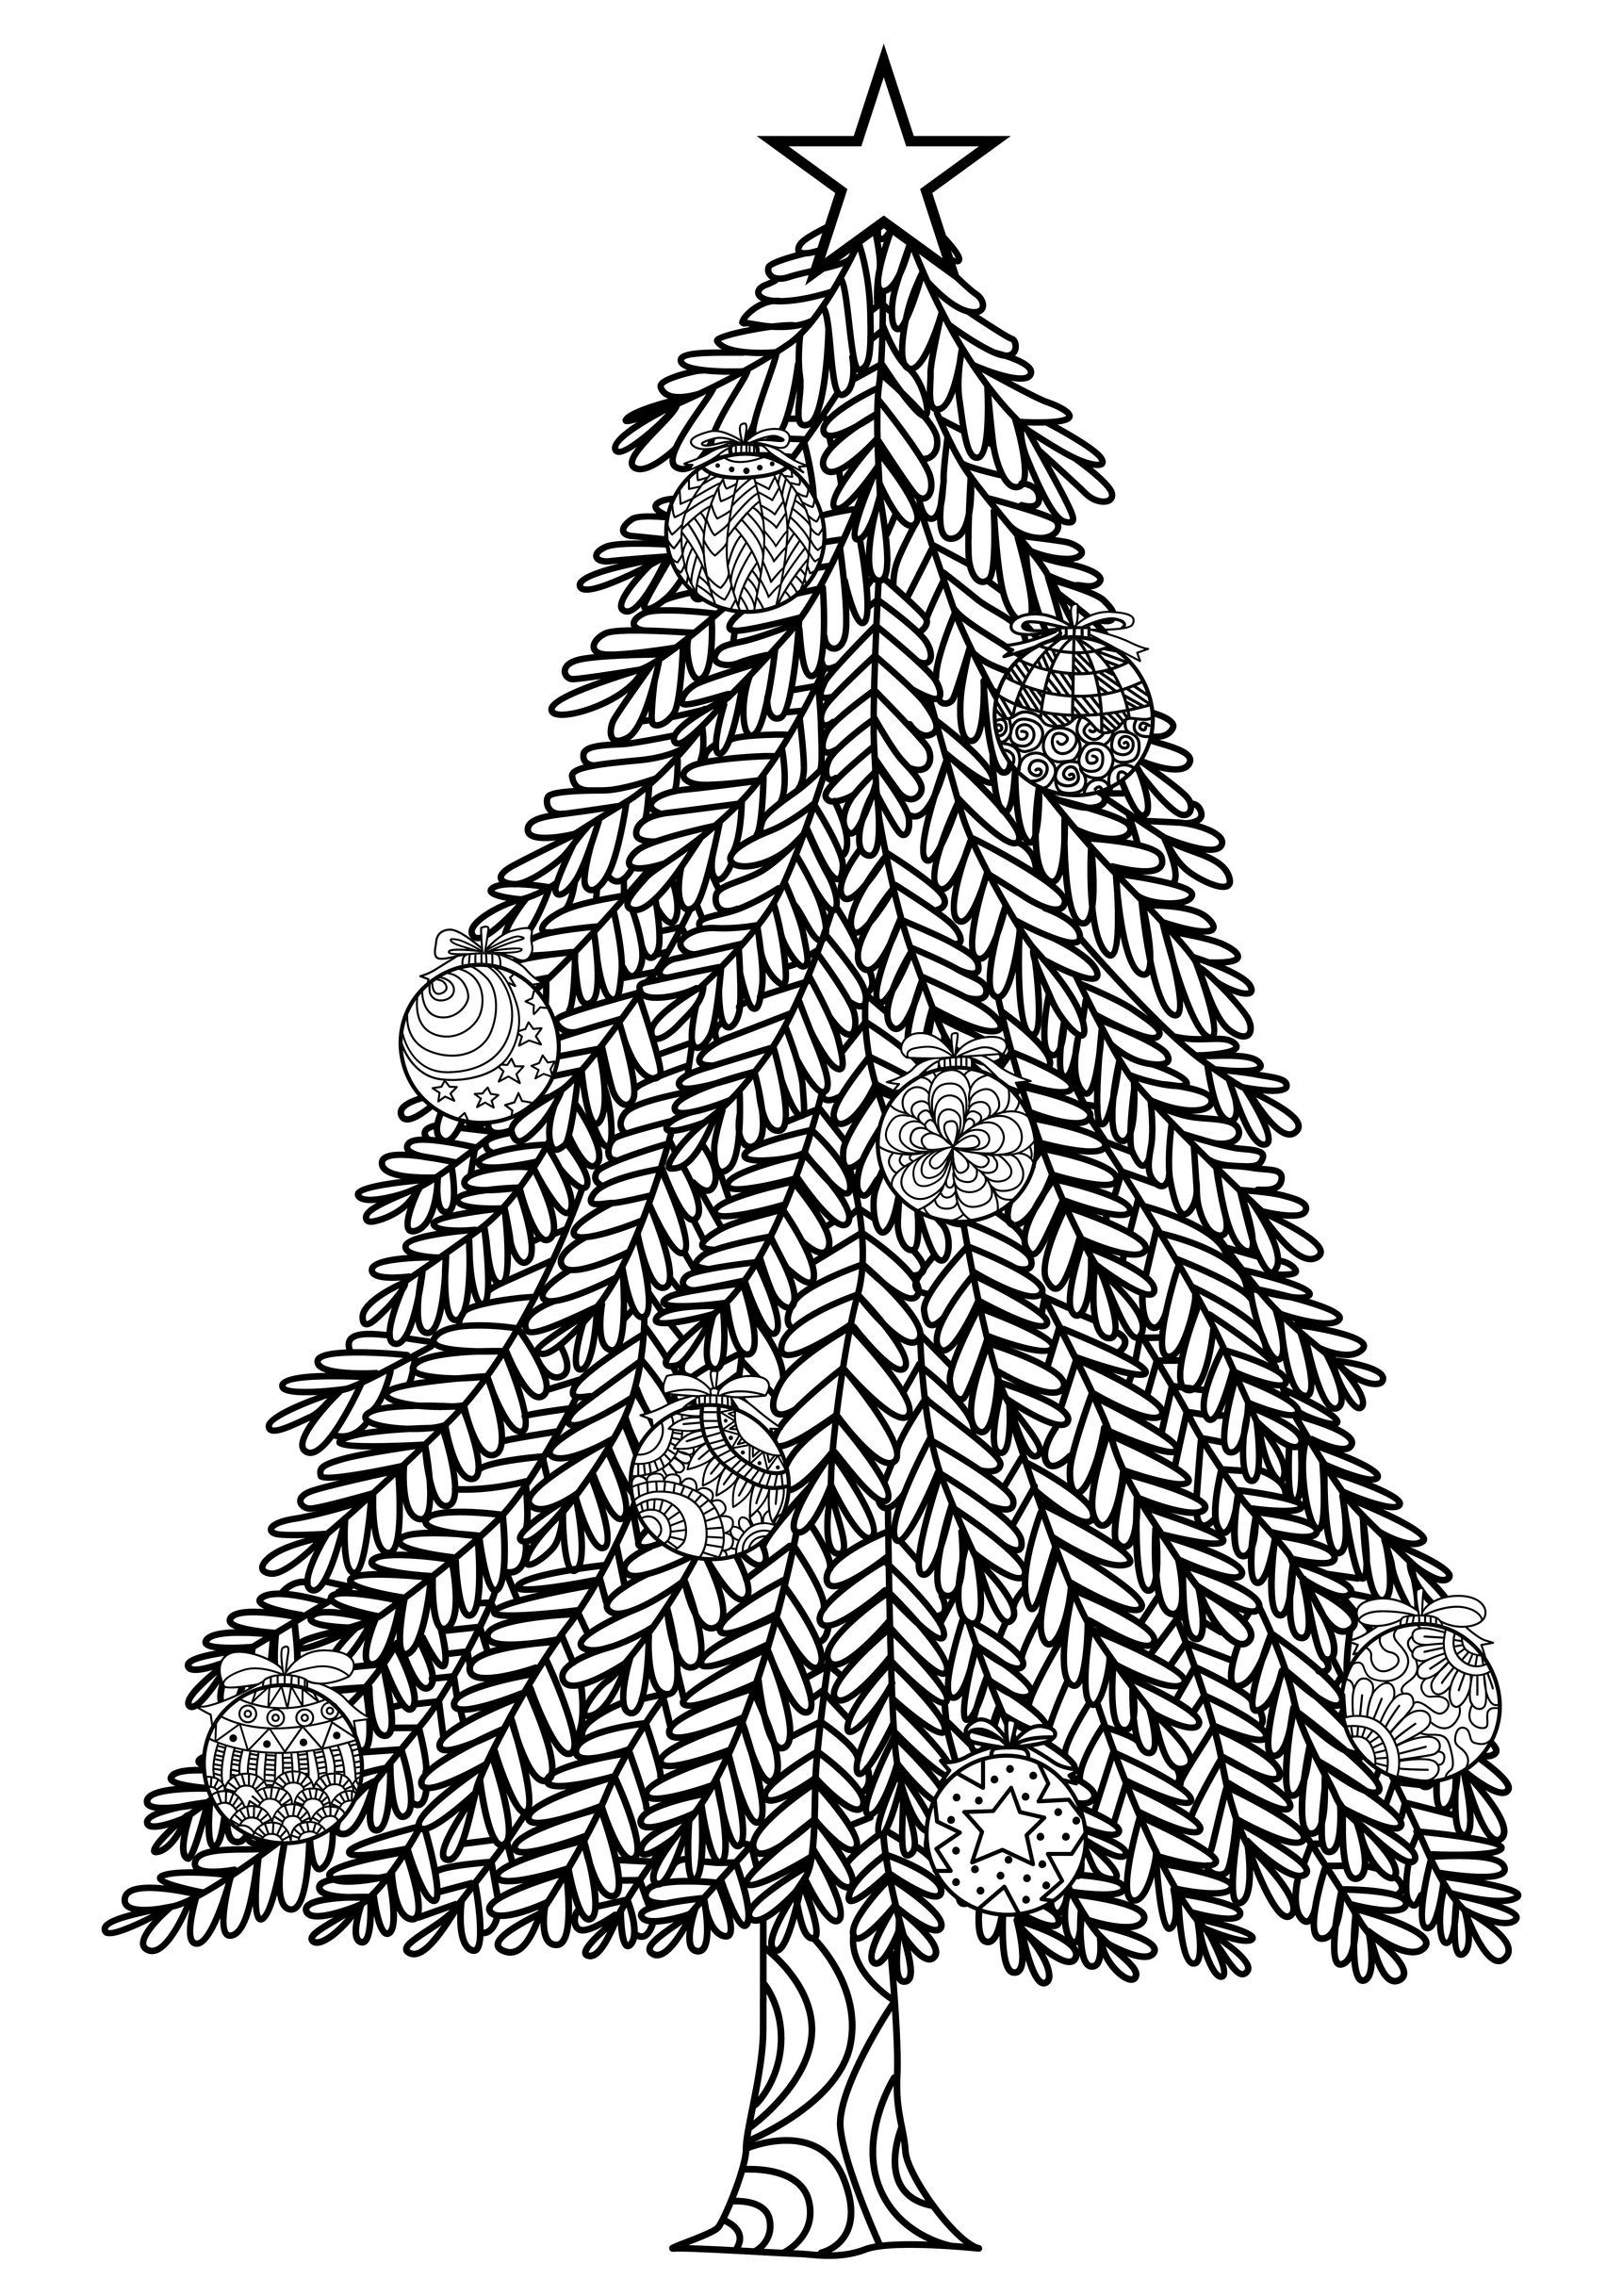 Christmas Tree With Big Ordiments Coloring Pages Free Christmas Tree Coloring Page Christmas Tree Pictures Tree Coloring Page